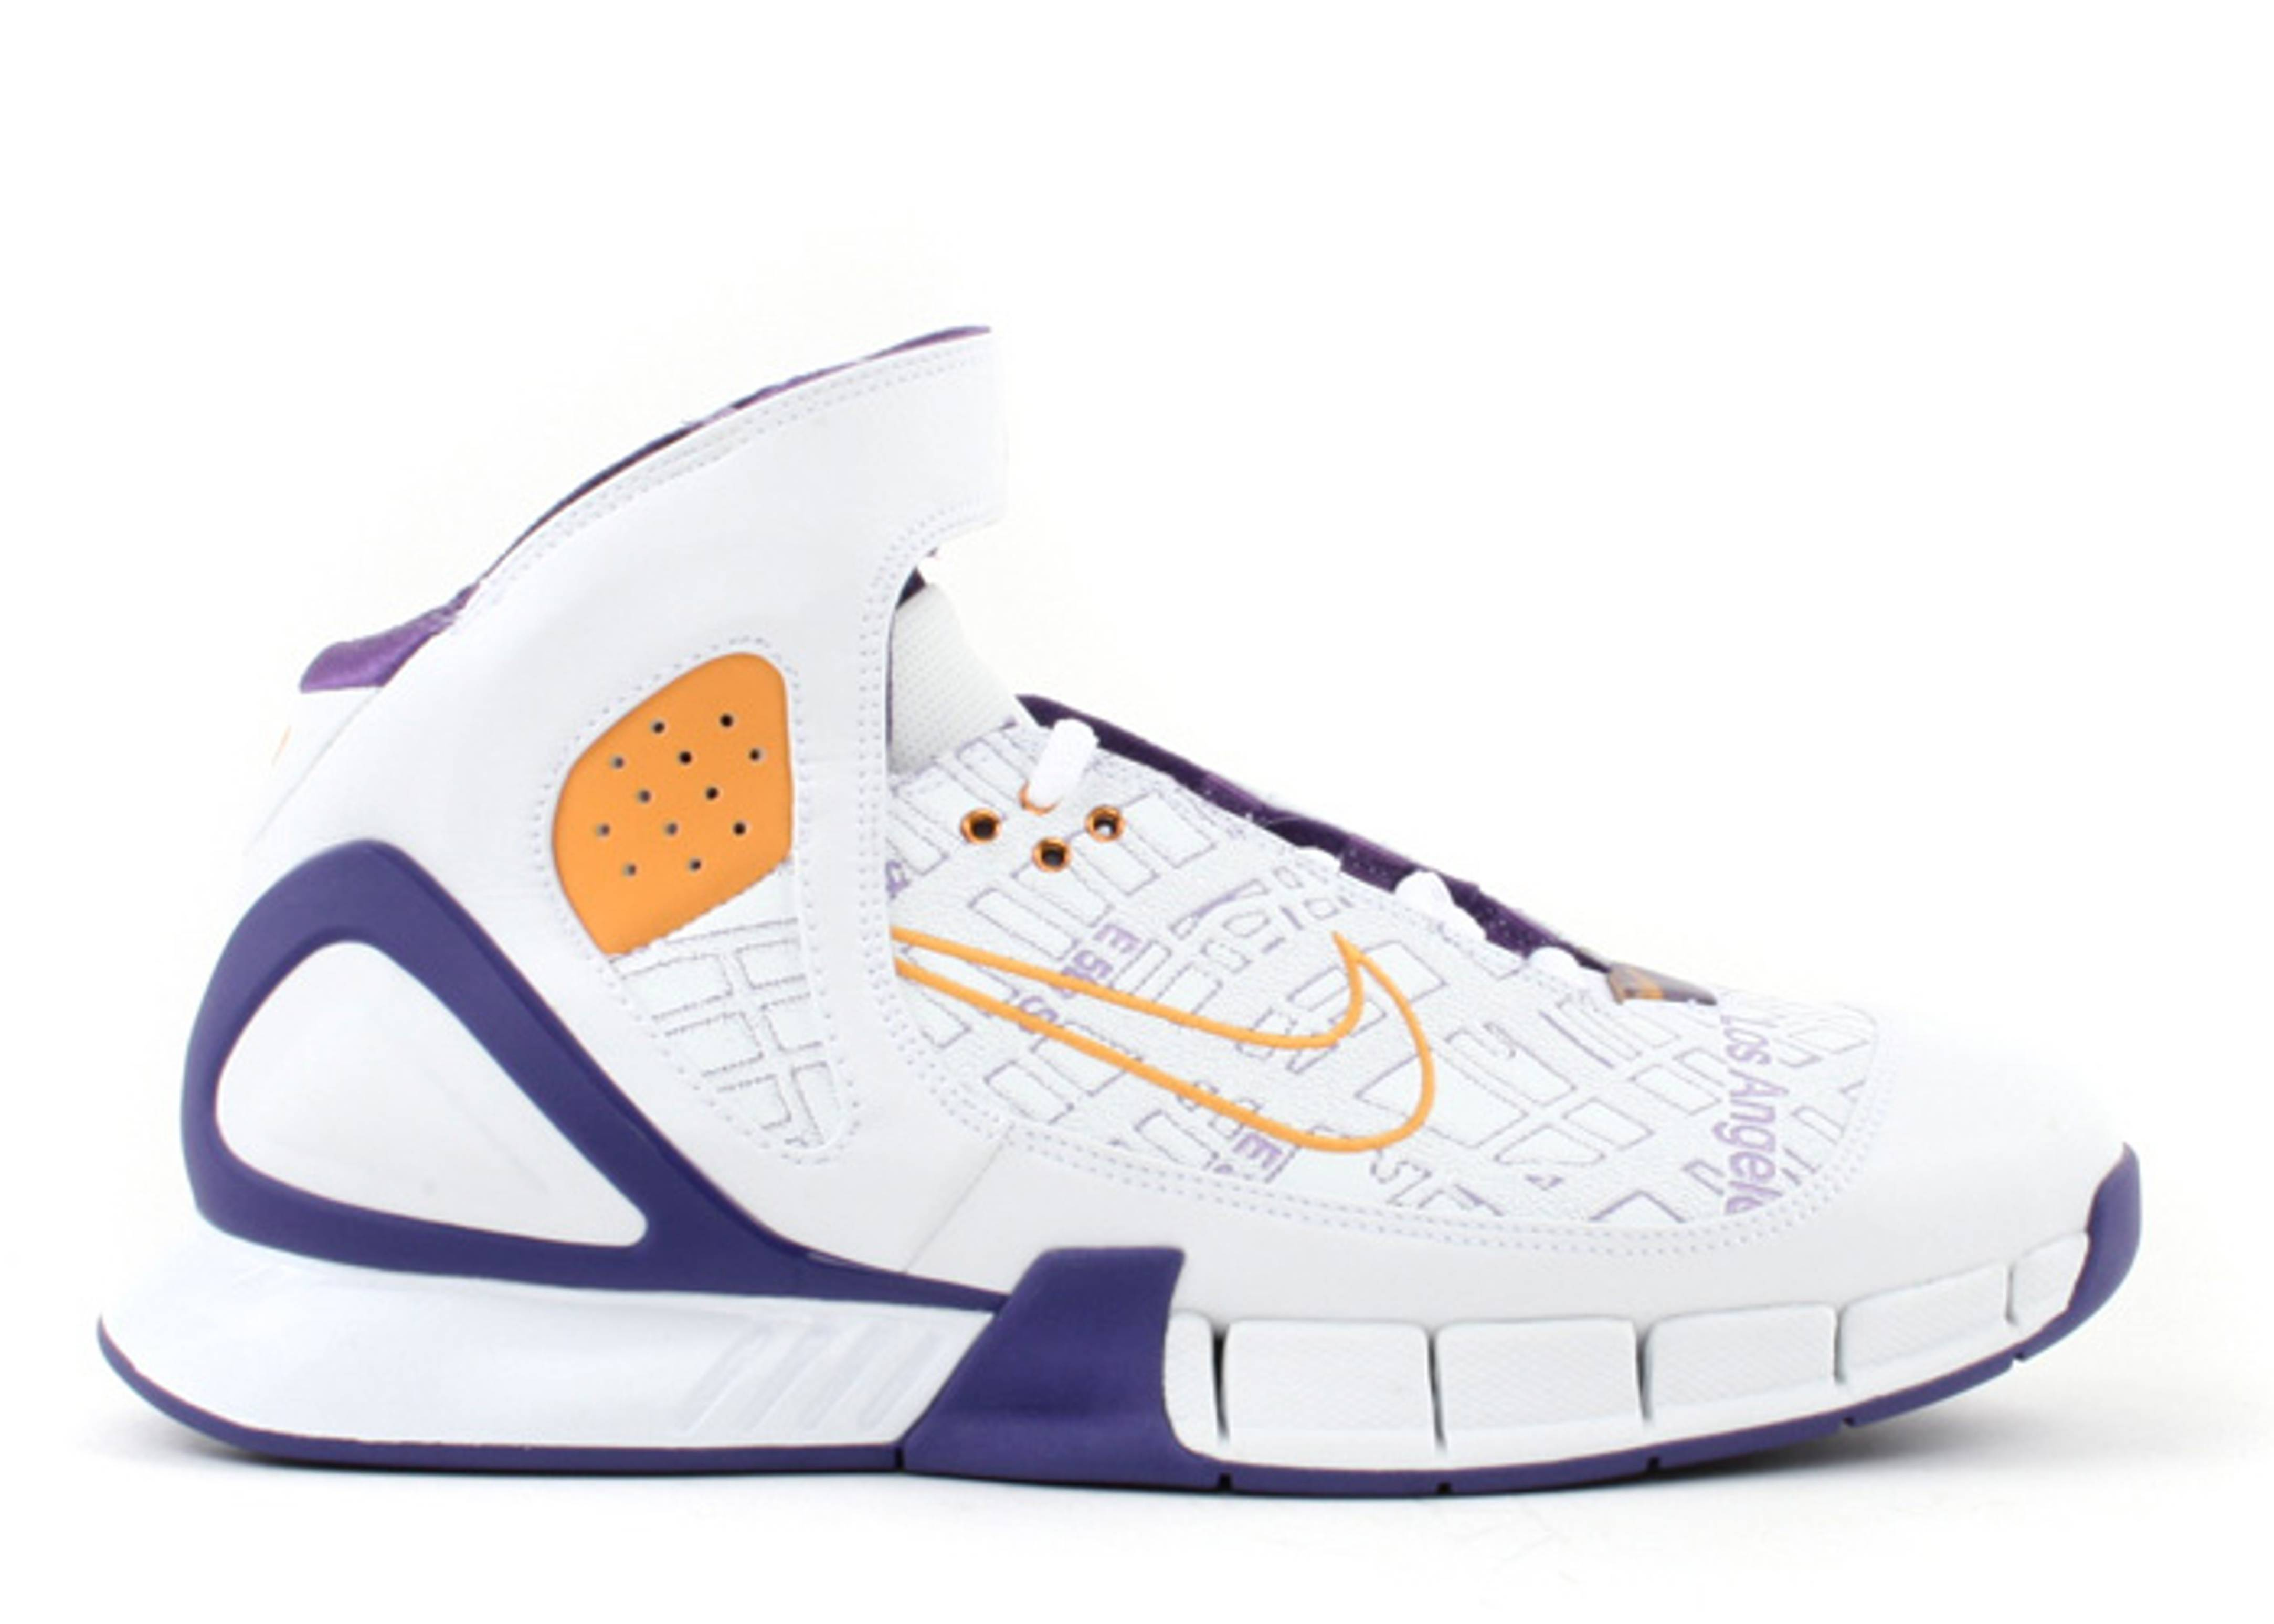 new lower prices best wholesaler reasonably priced air zoom huarache 2k5 laser kb